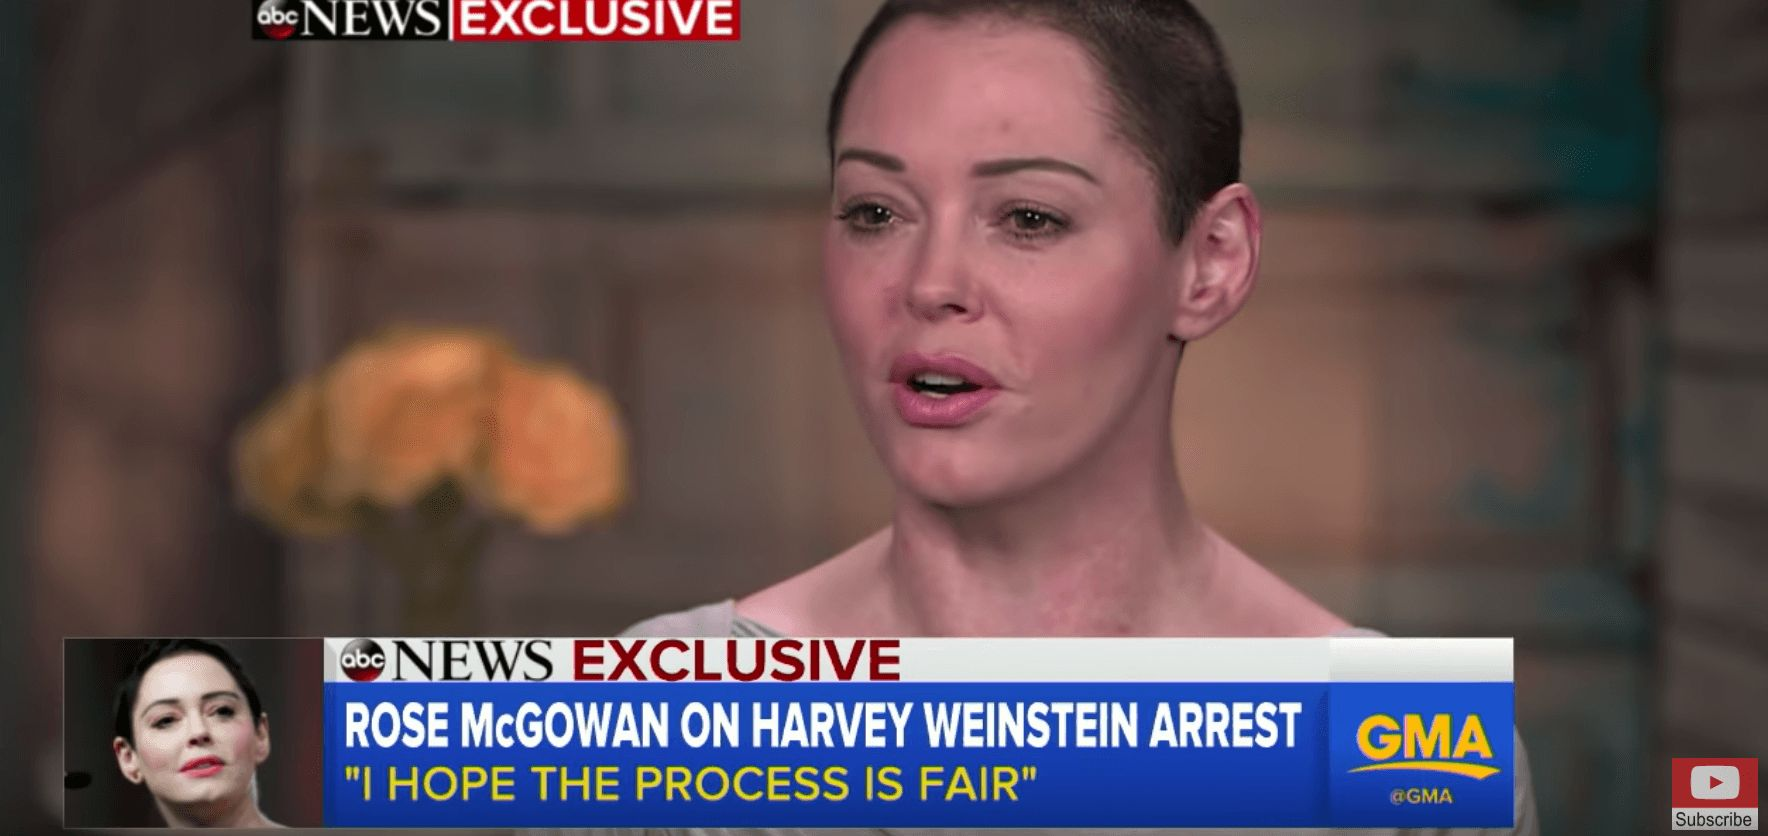 Image may contain: imagine how tired we are meme, Rose McGowan, meme, reaction, viral, video, tweet, Twitter, clip, examples, best, funny, origin, interview, ABC News, Harvey Weinstein, Female, Head, Poster, Advertisement, Person, Face, Human